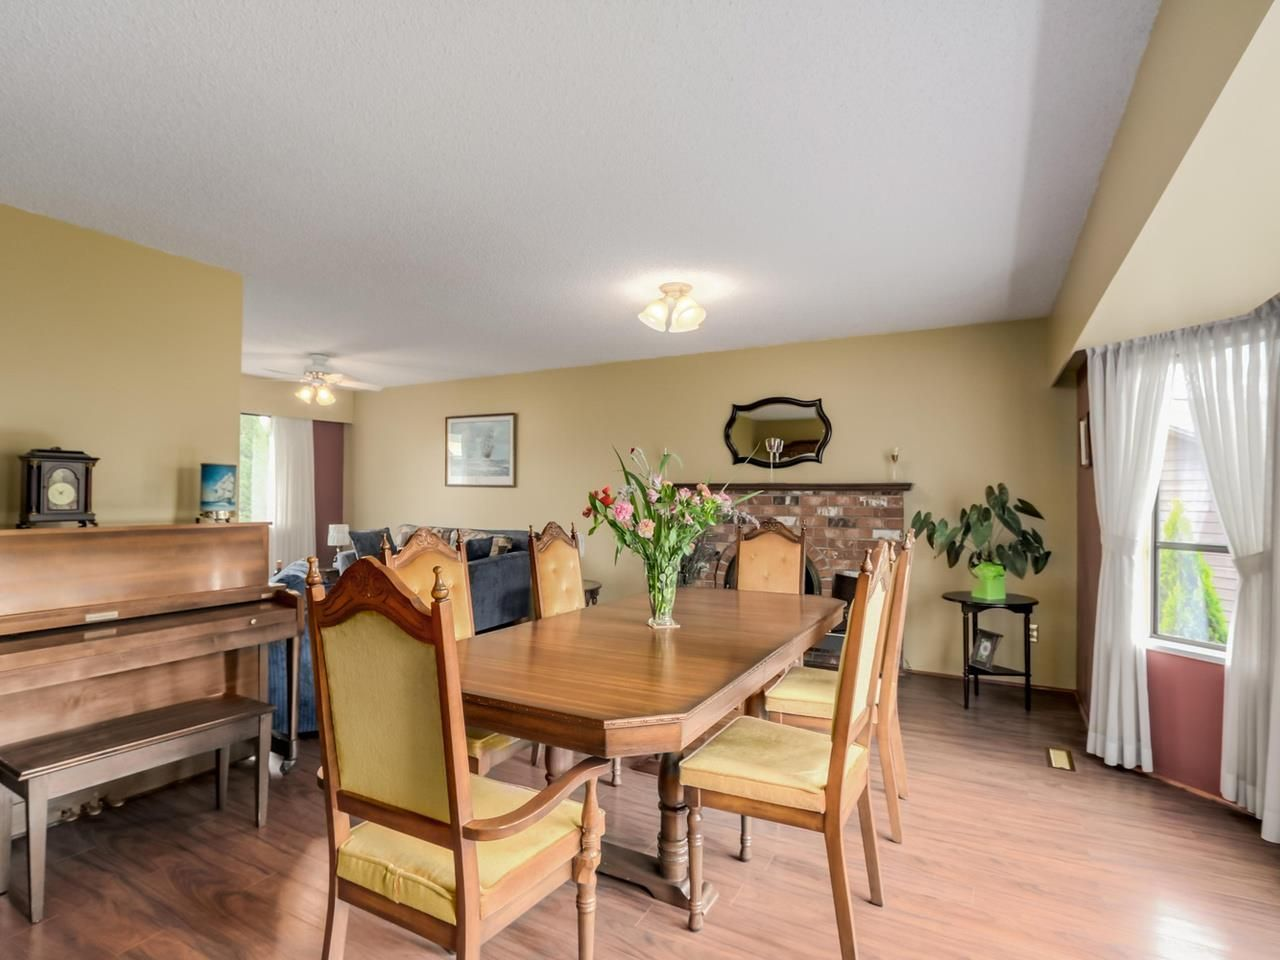 Photo 8: Photos: 4032 AYLING Street in Port Coquitlam: Oxford Heights House for sale : MLS®# R2074528